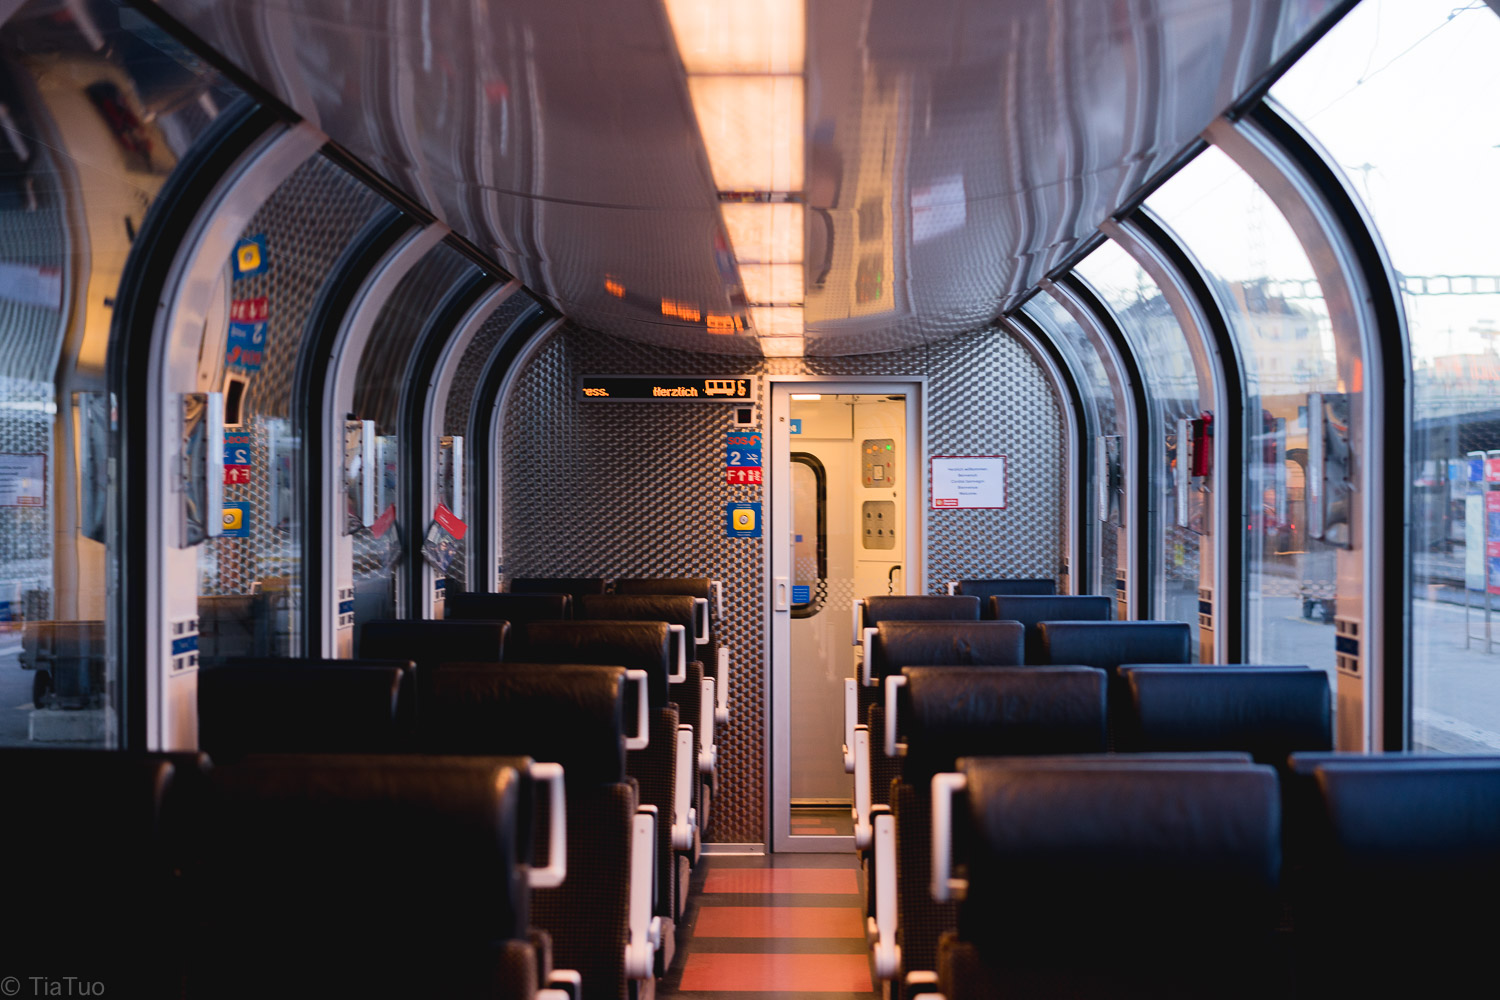 Peaceful and stylish interior of the train